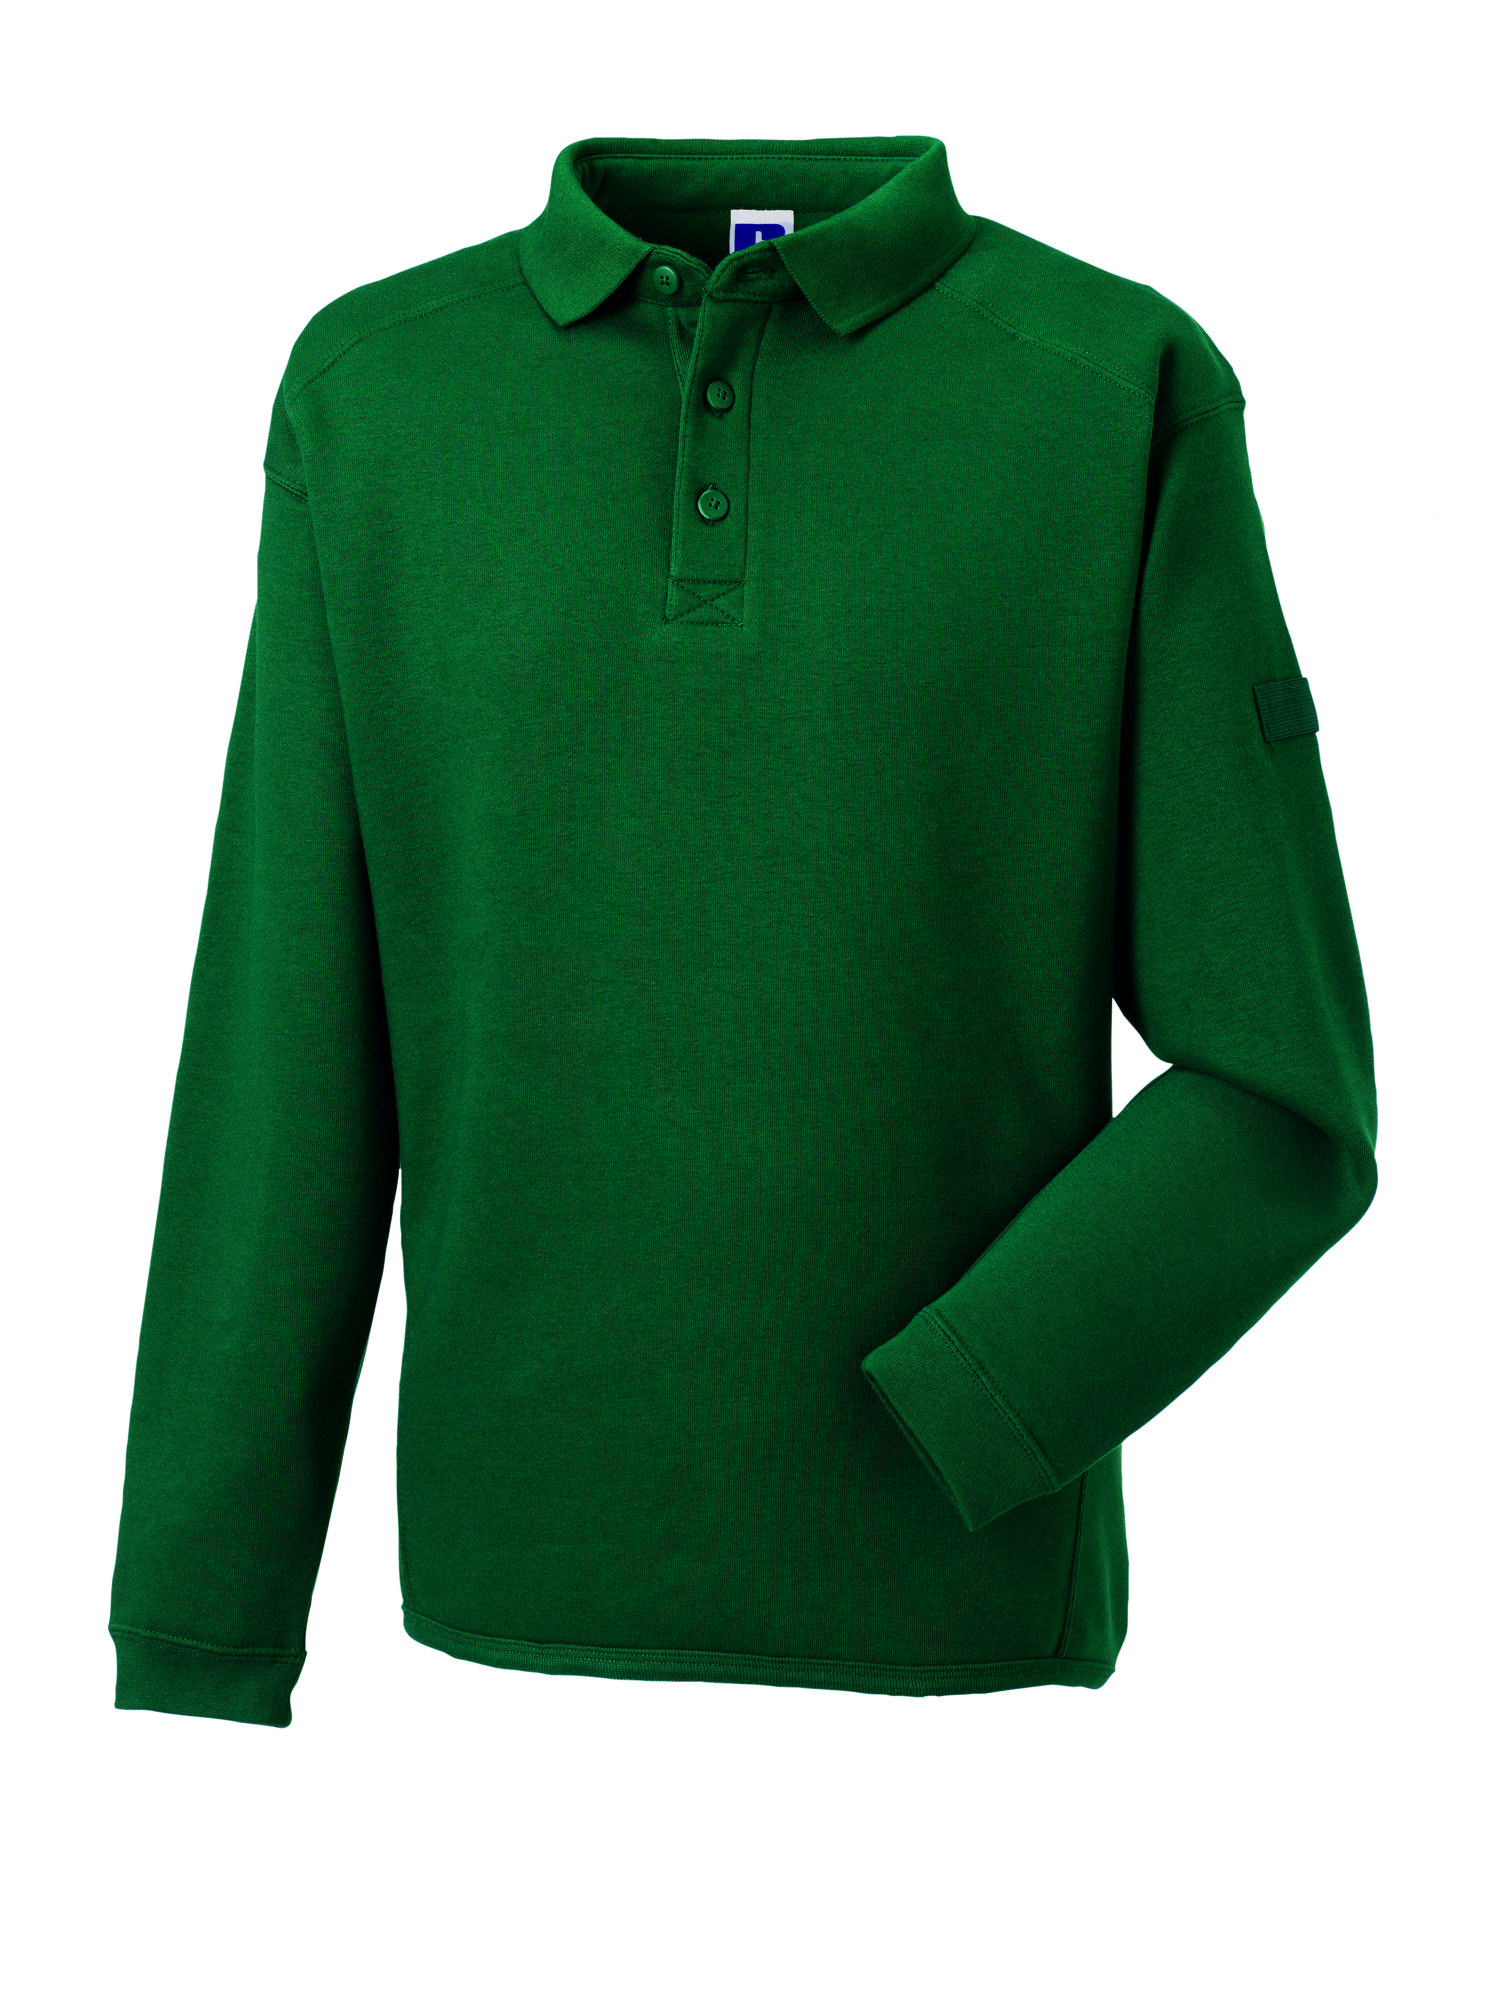 Heavy Duty Collar Sweatshirt - Bottle Green - XXL